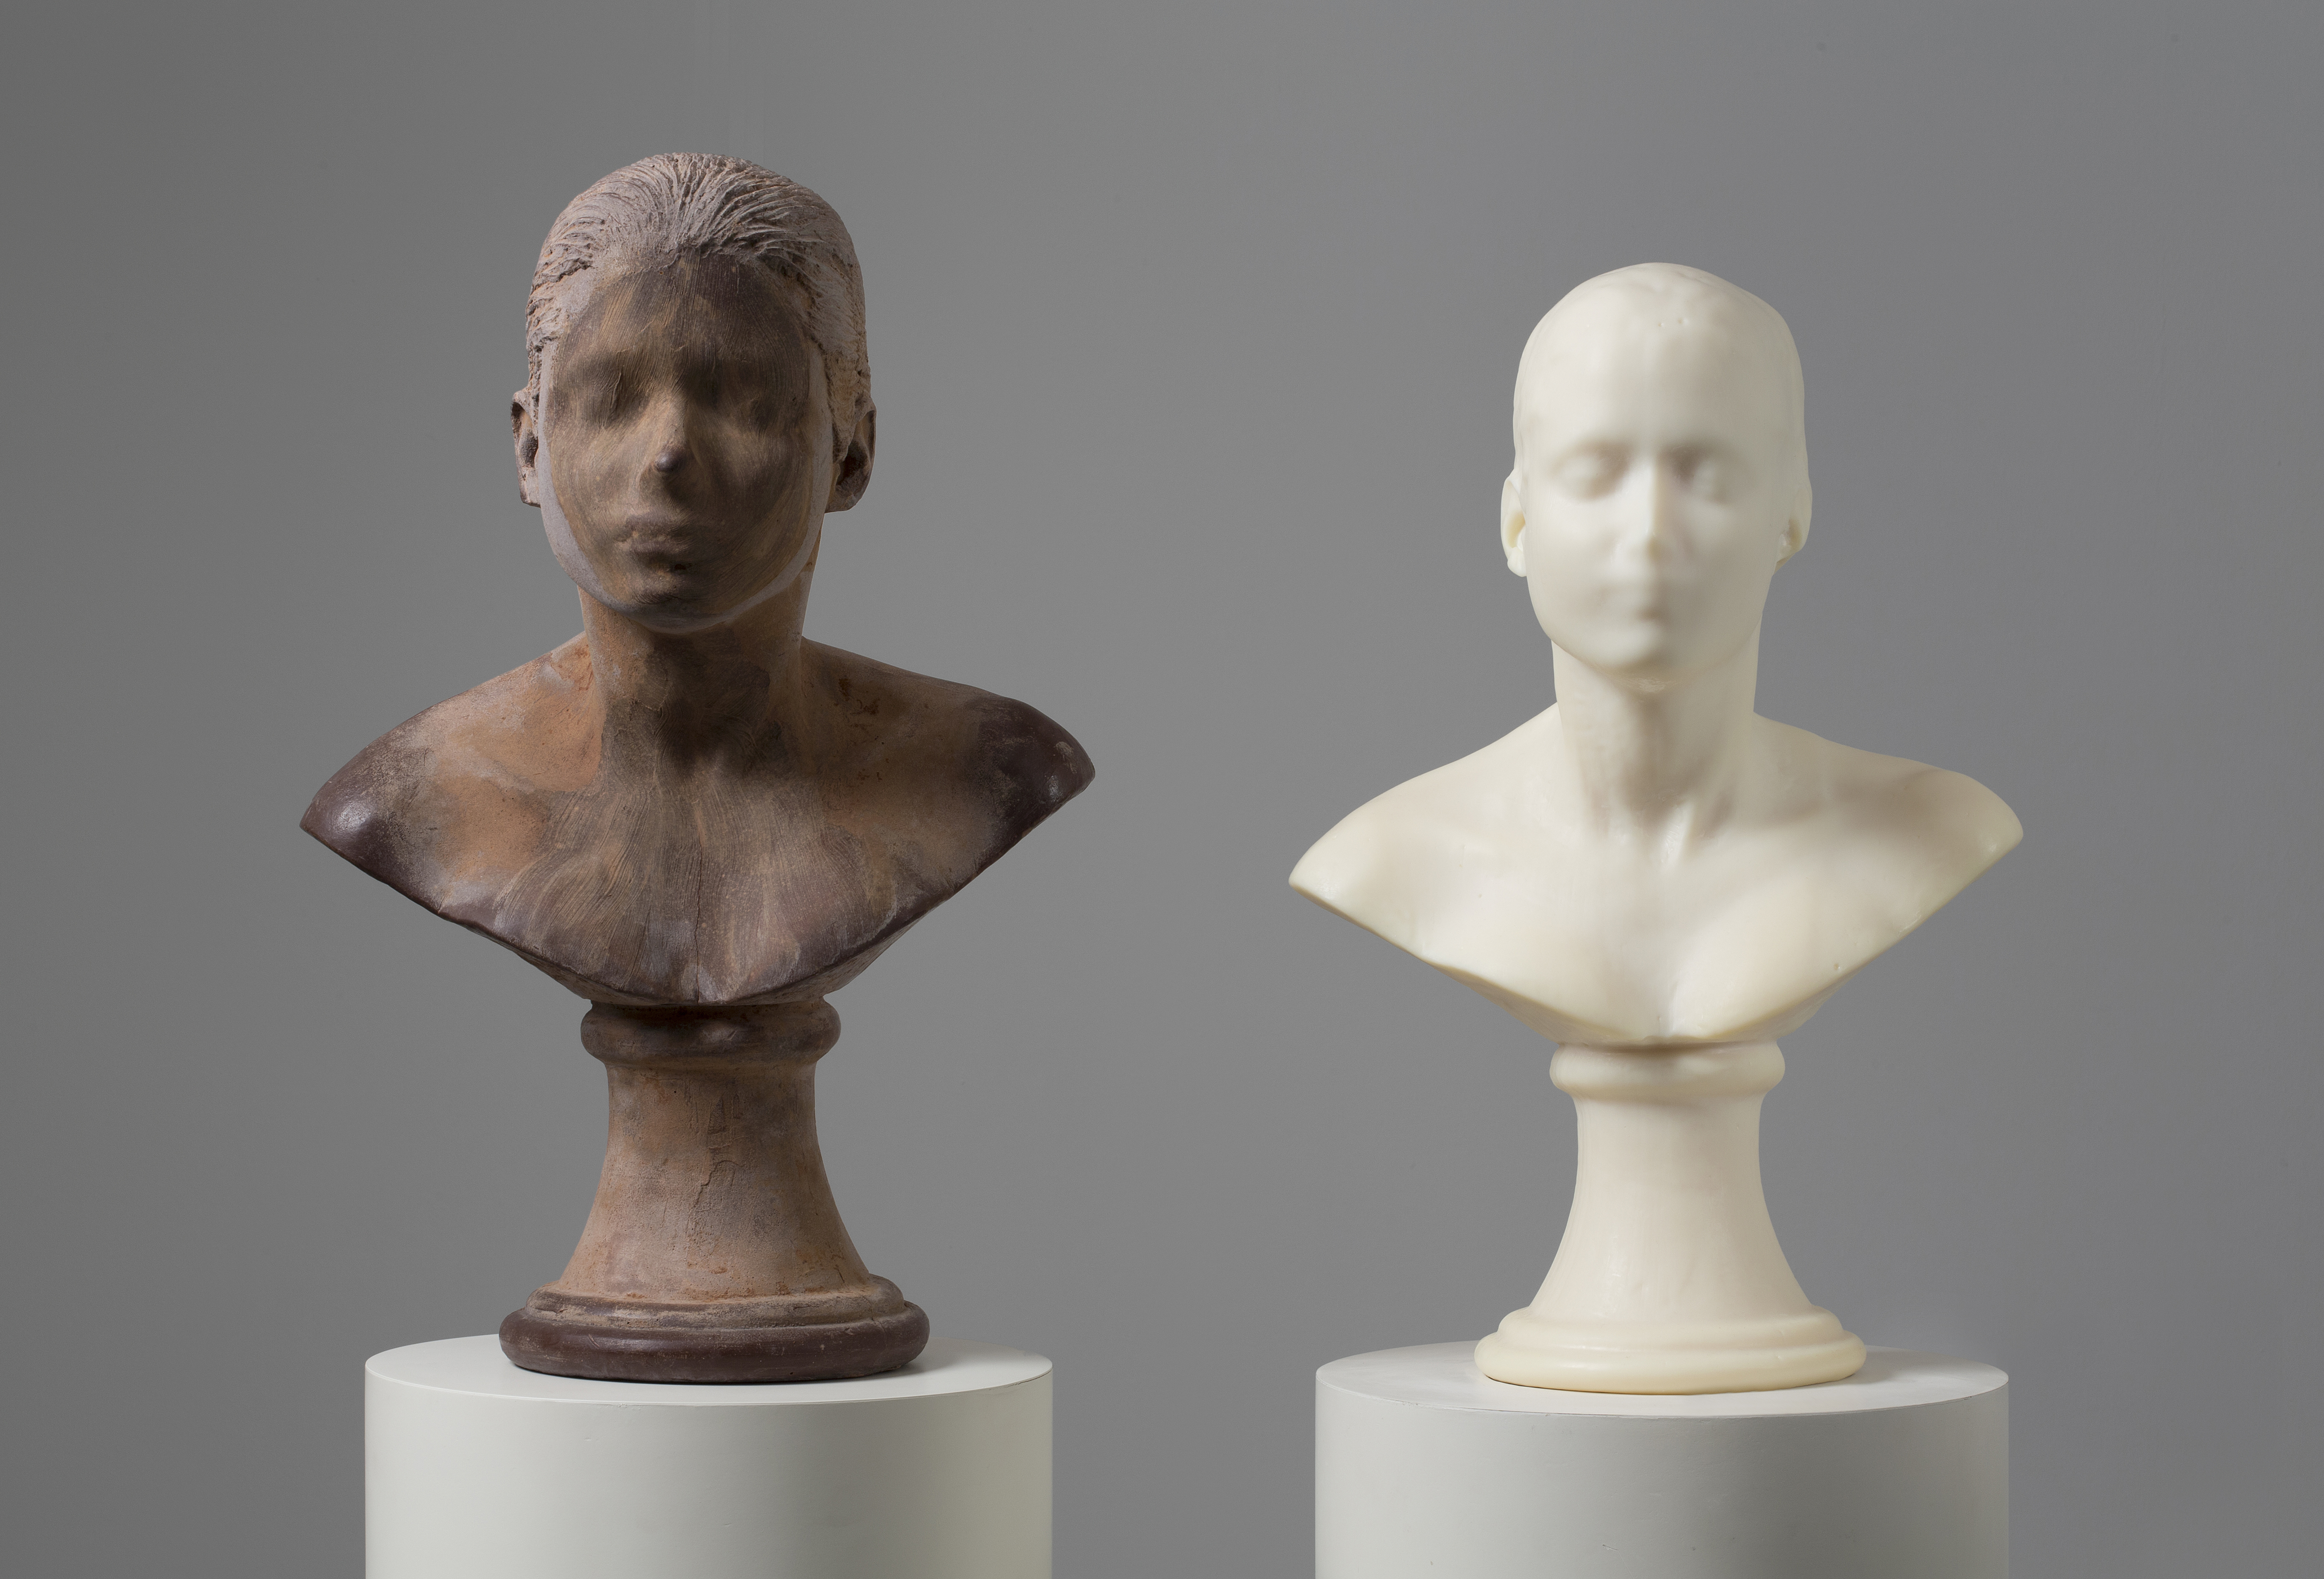 Describe lick and lather by janine antoni, naked twins have sex